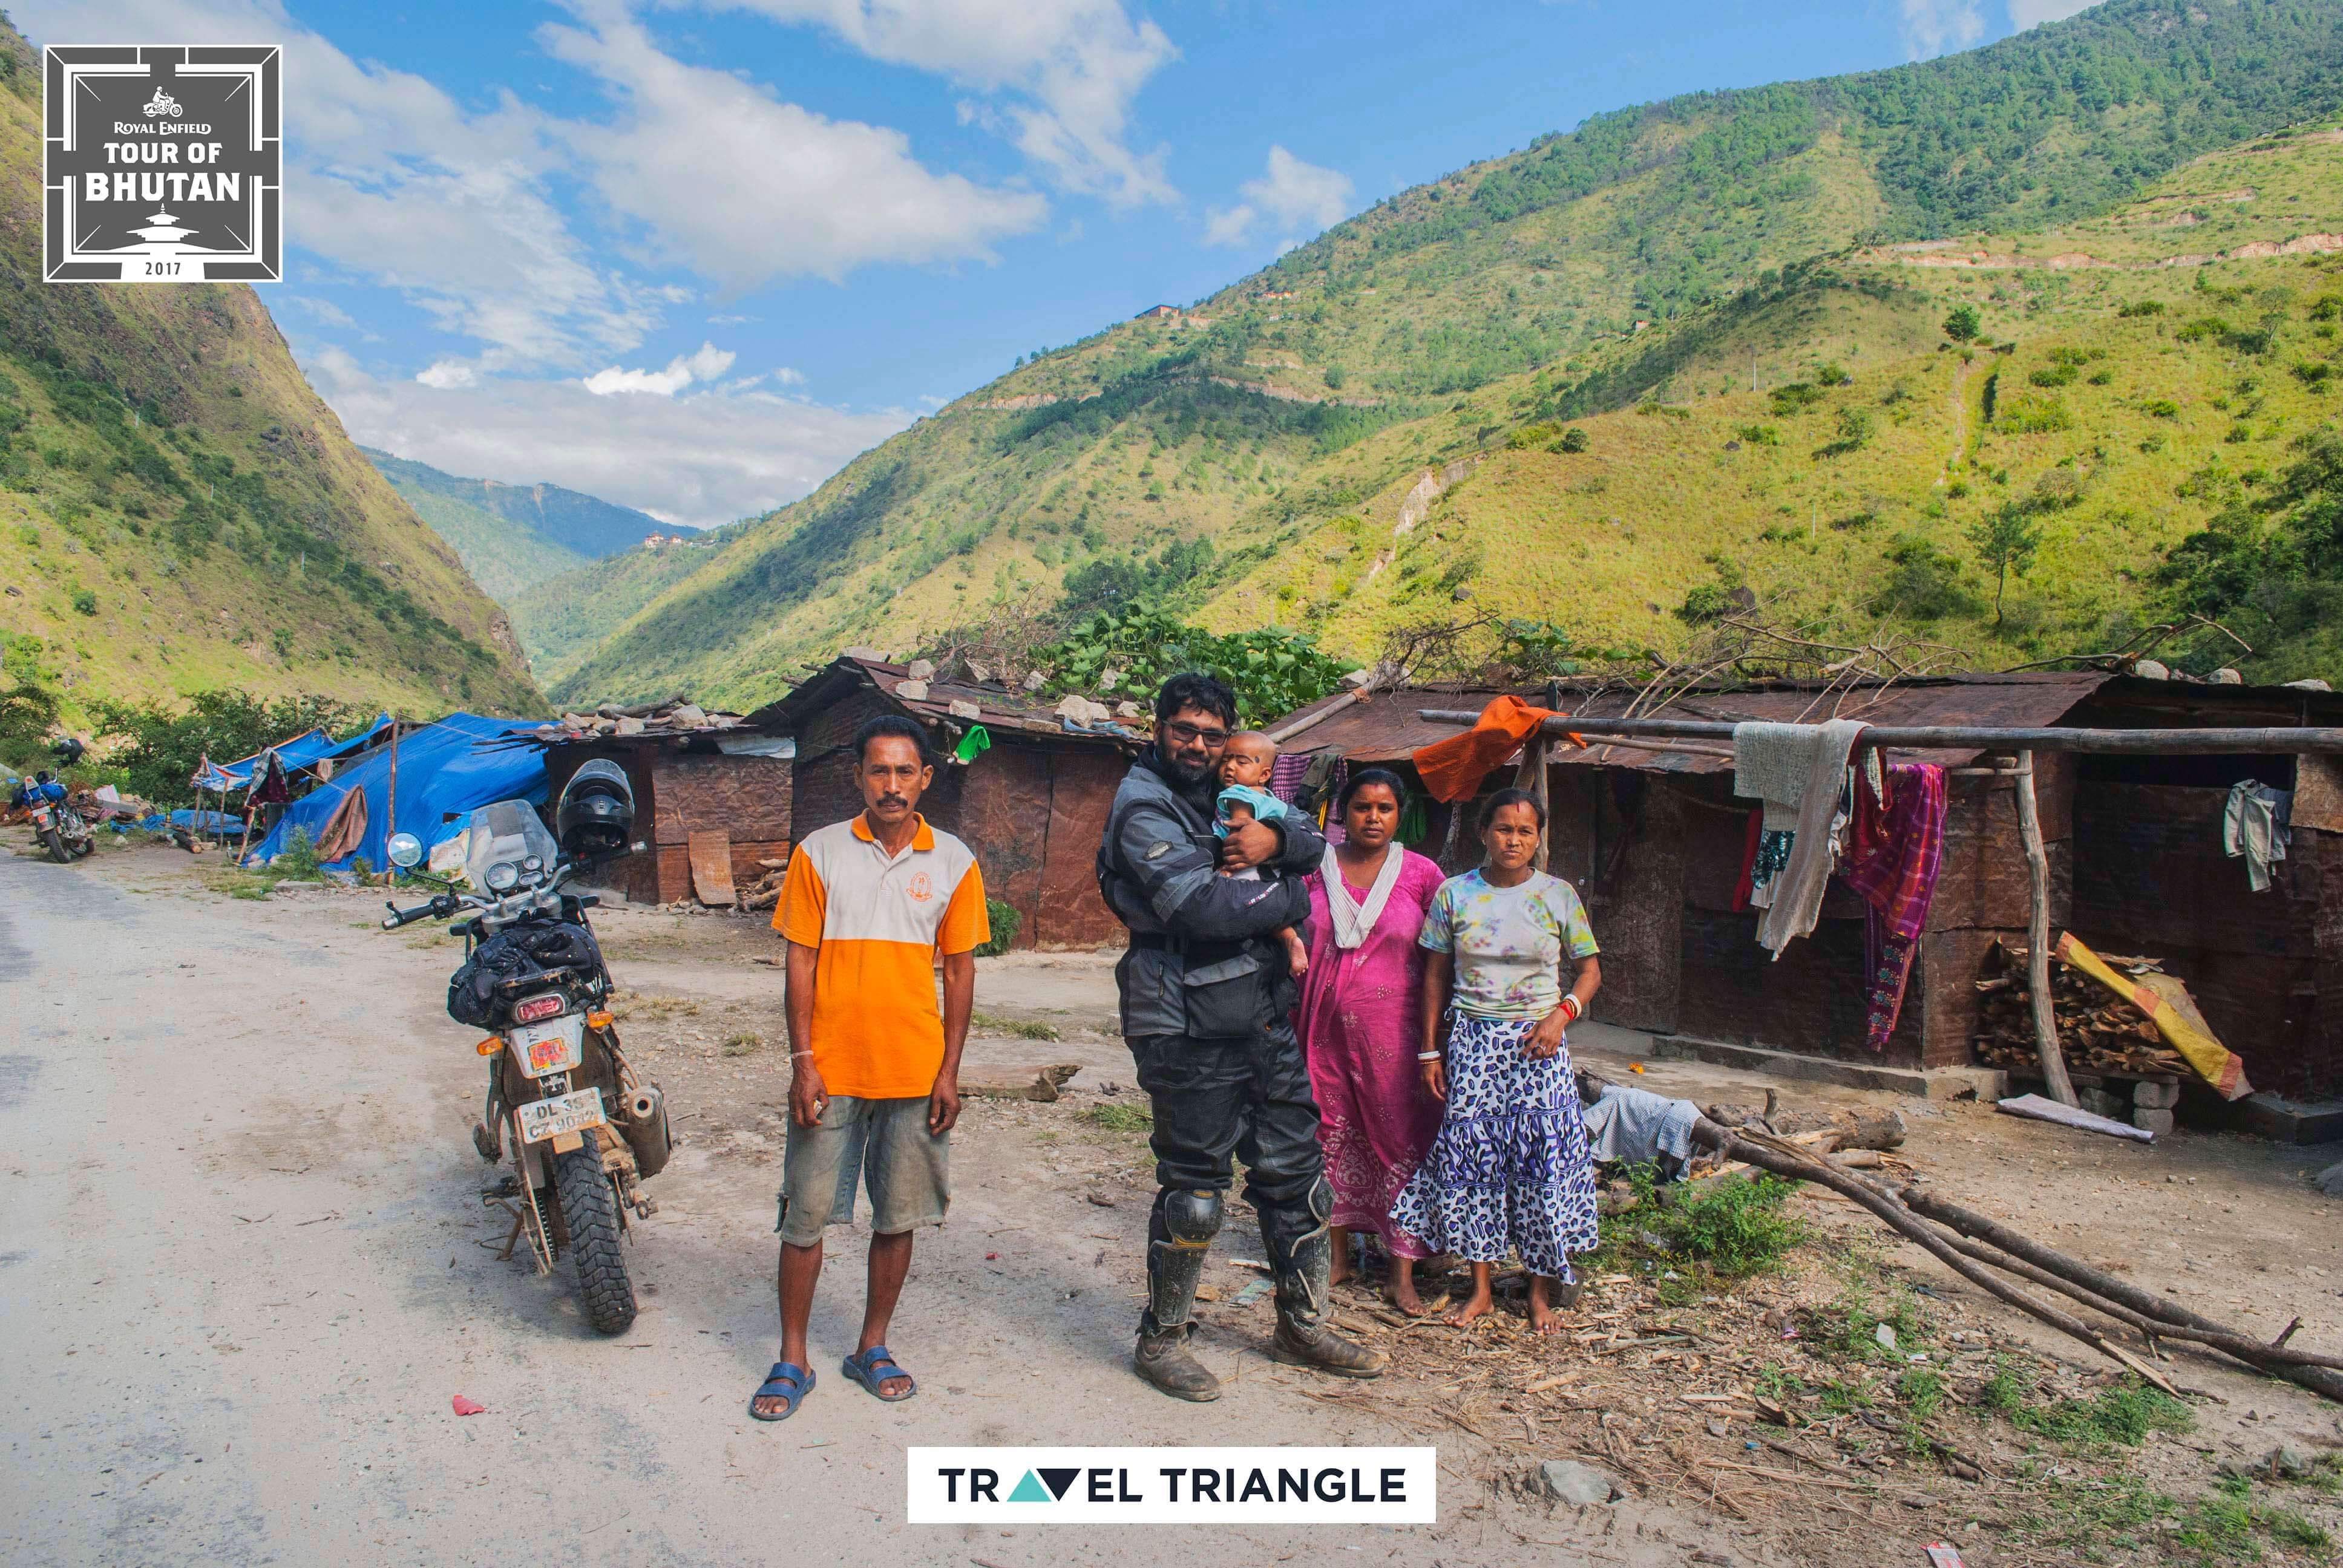 Mongar to Trashigang: riders meeting a family of friendly bhutanese people